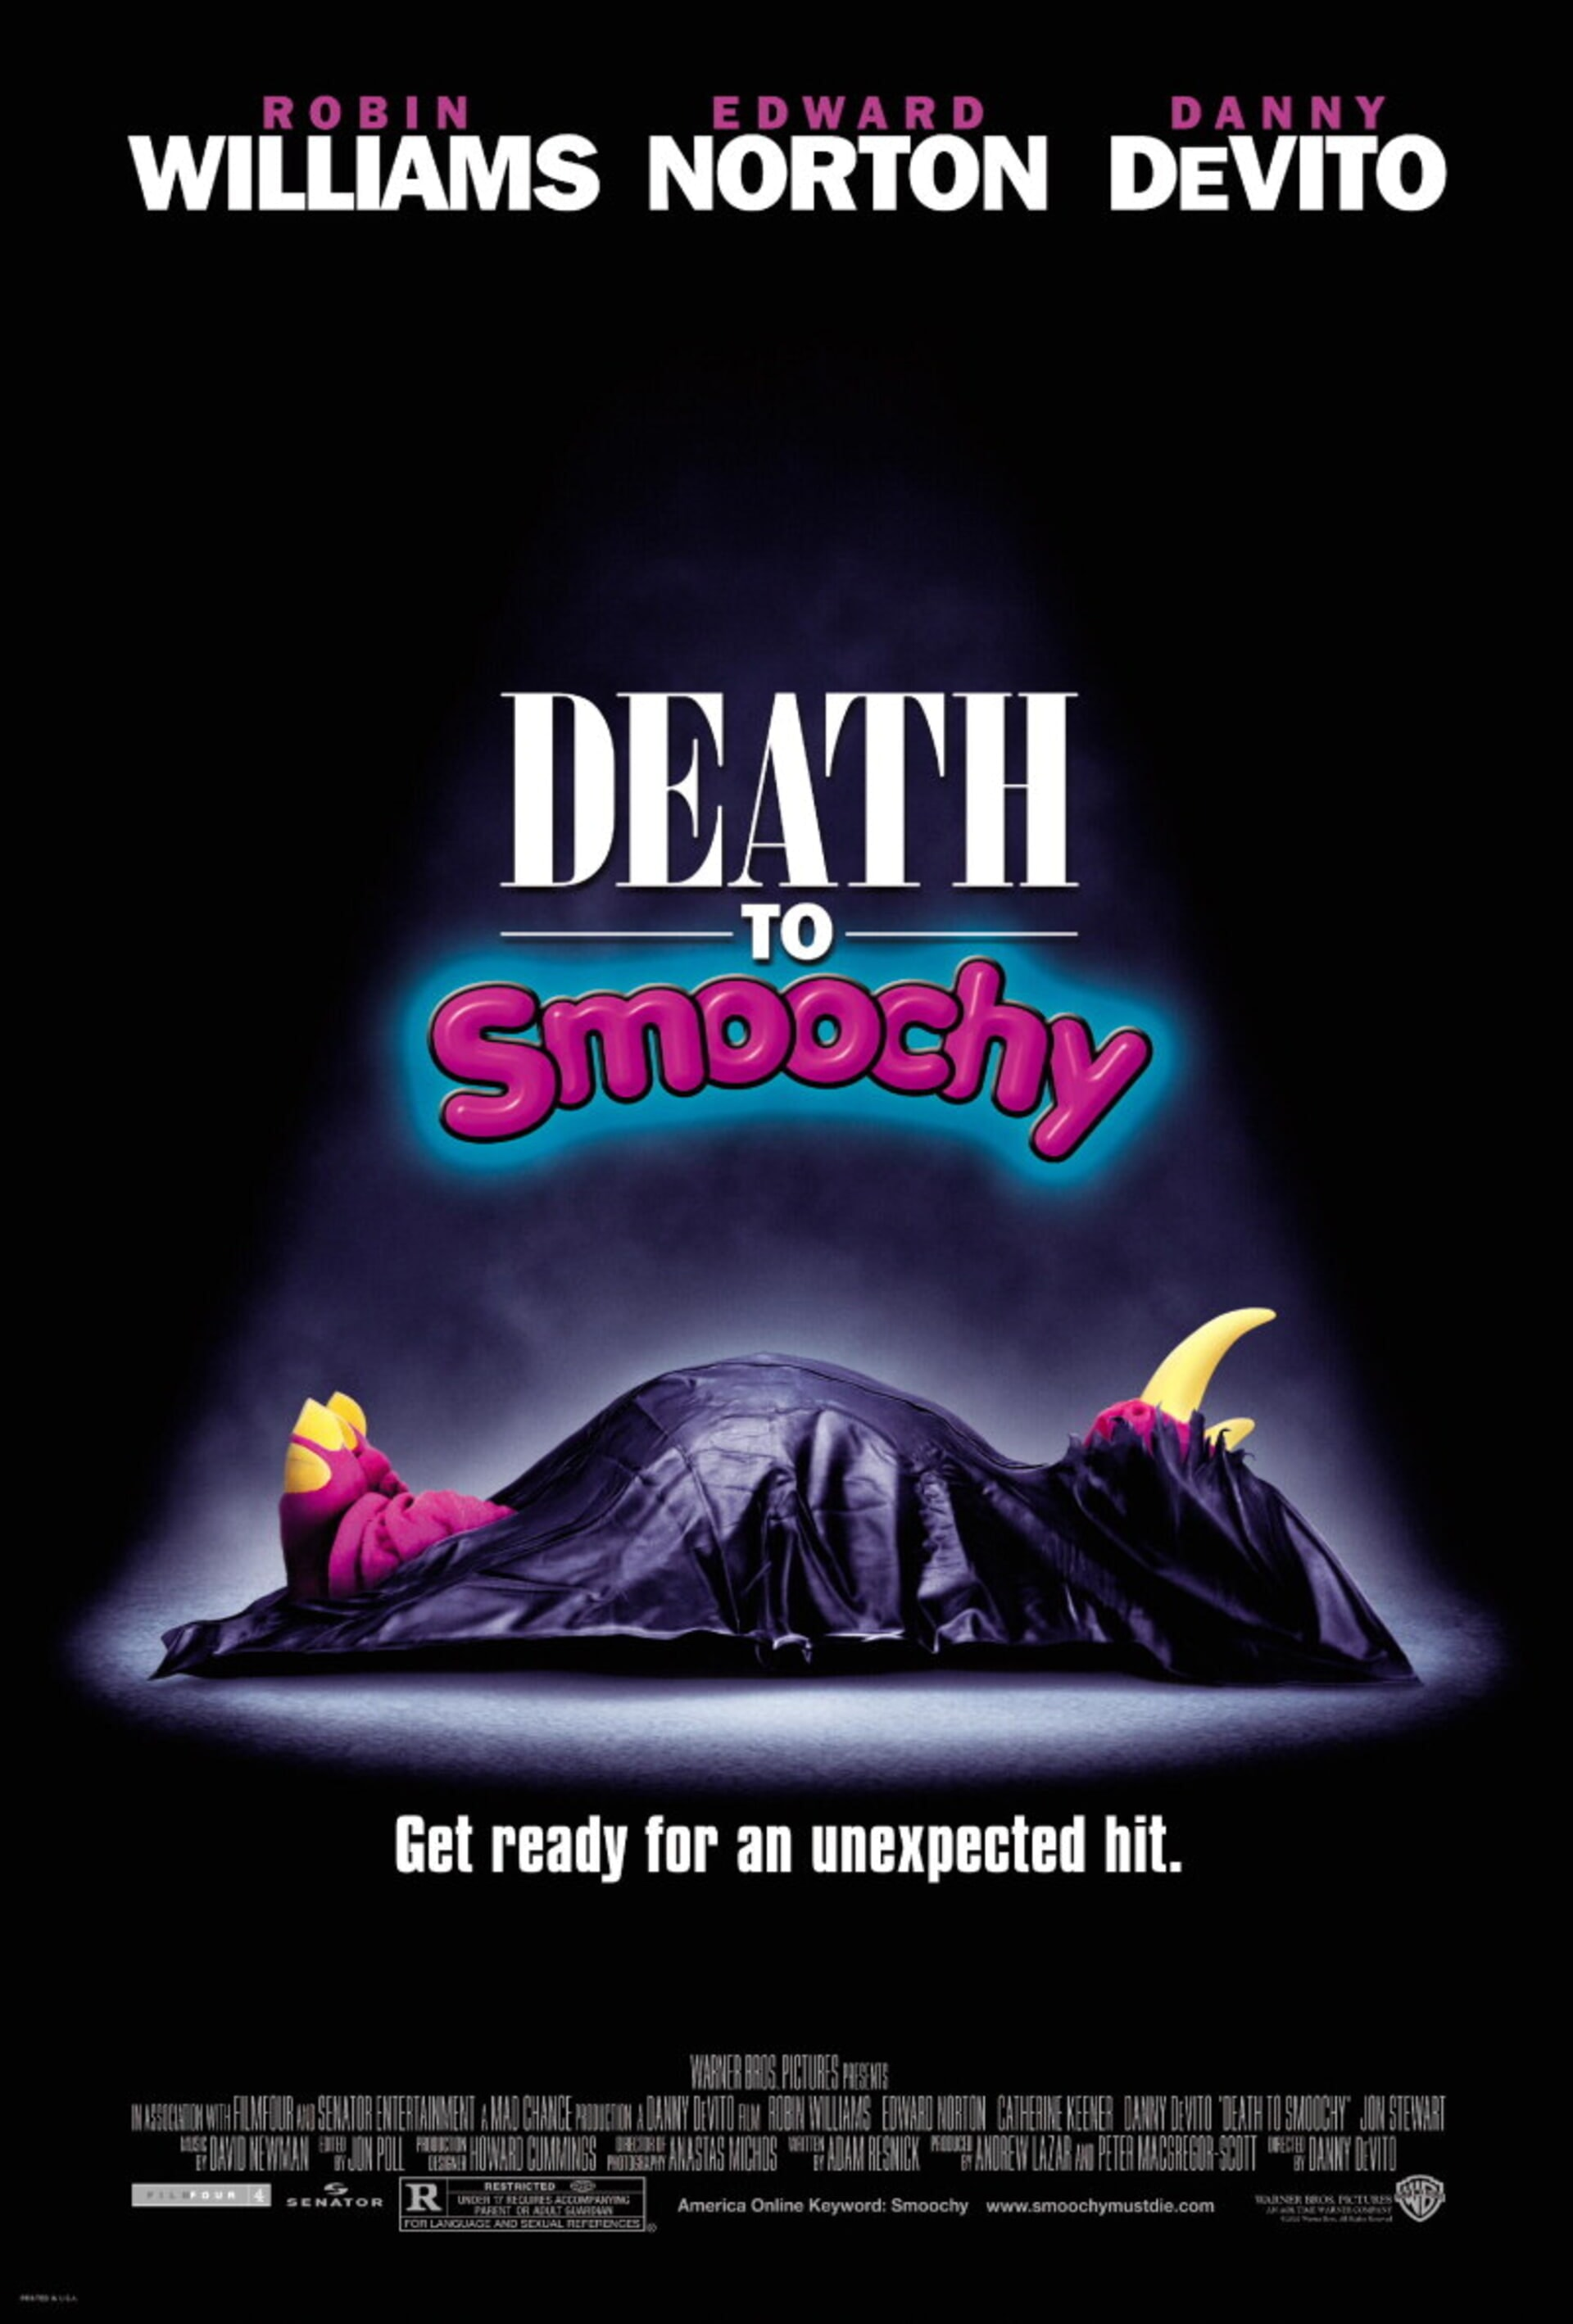 Death to Smoochy - Poster 1